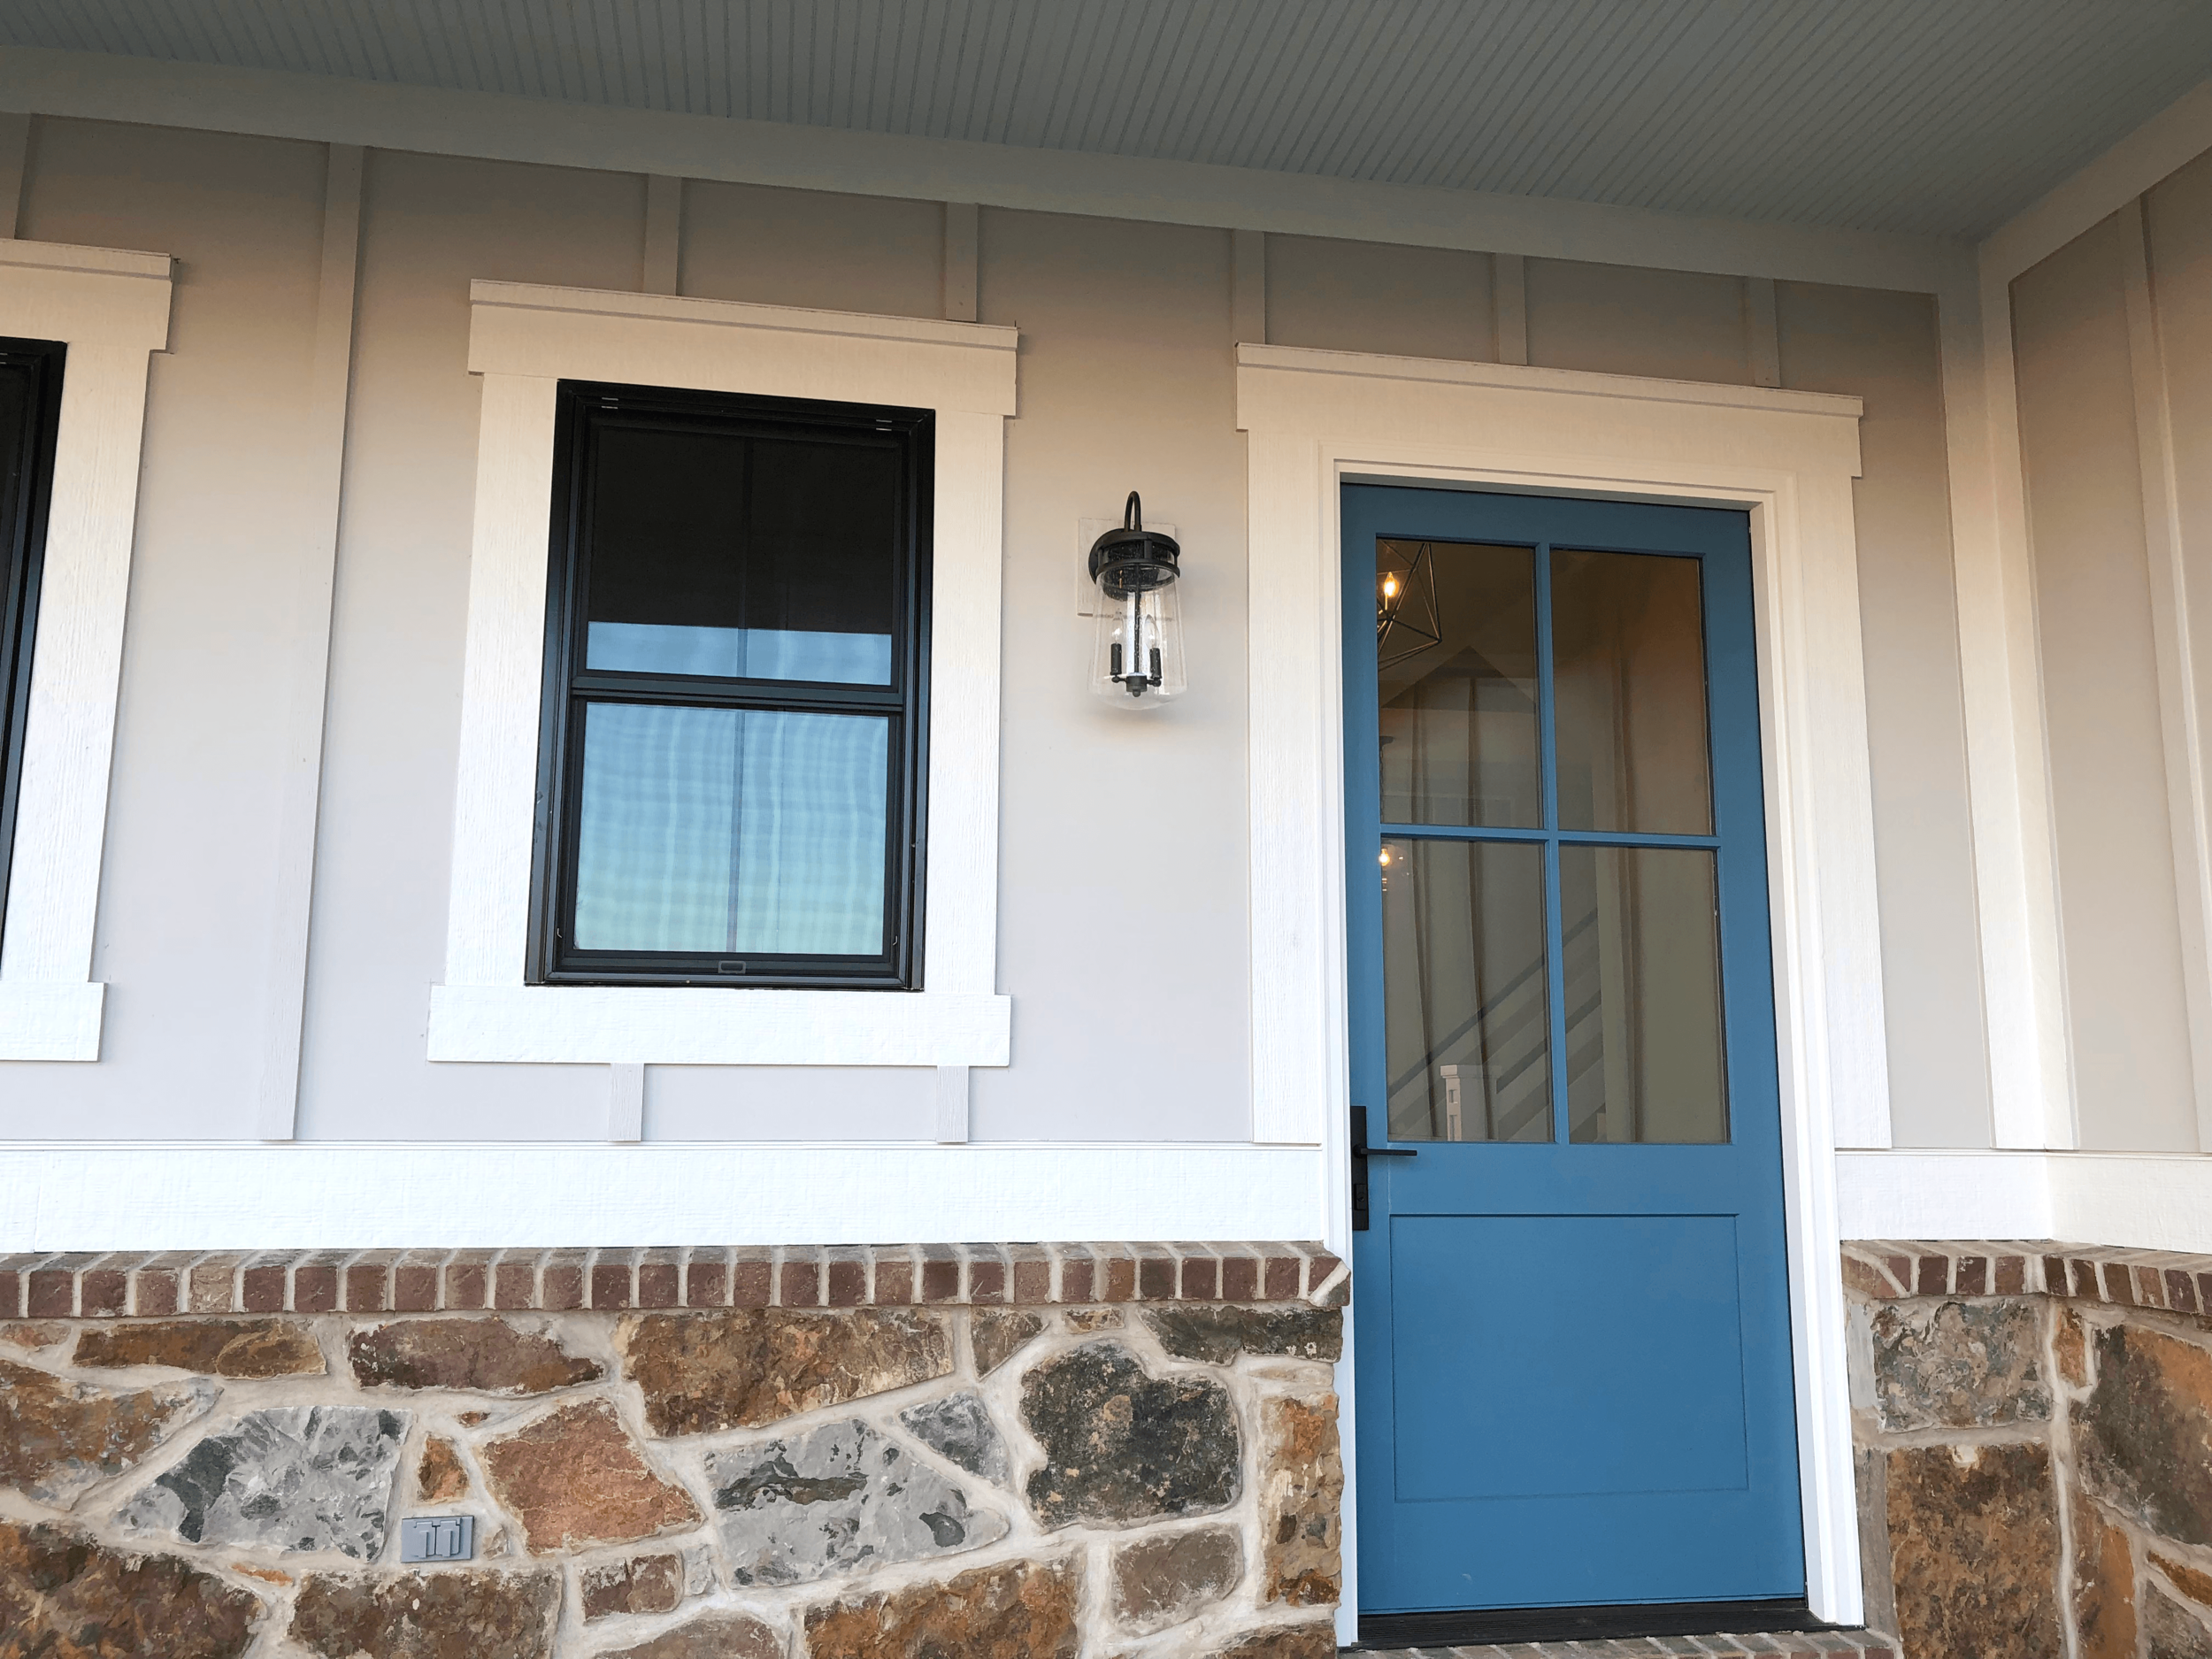 This vibrant blue door stands out against the cream and white siding.